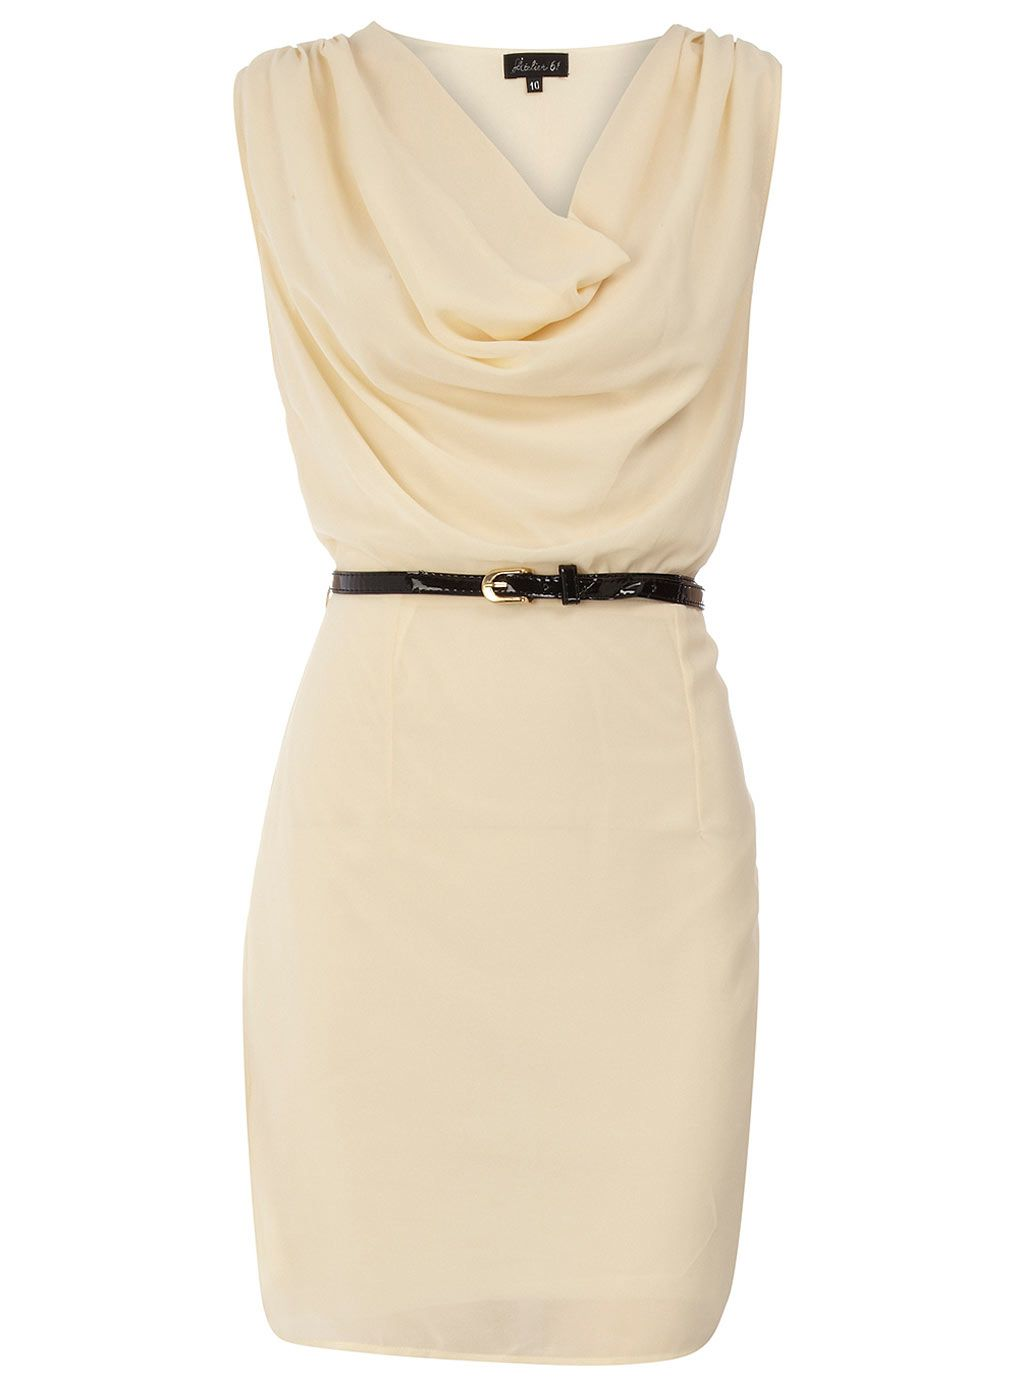 Creamy Ivory Belted Cowl Neck Dress